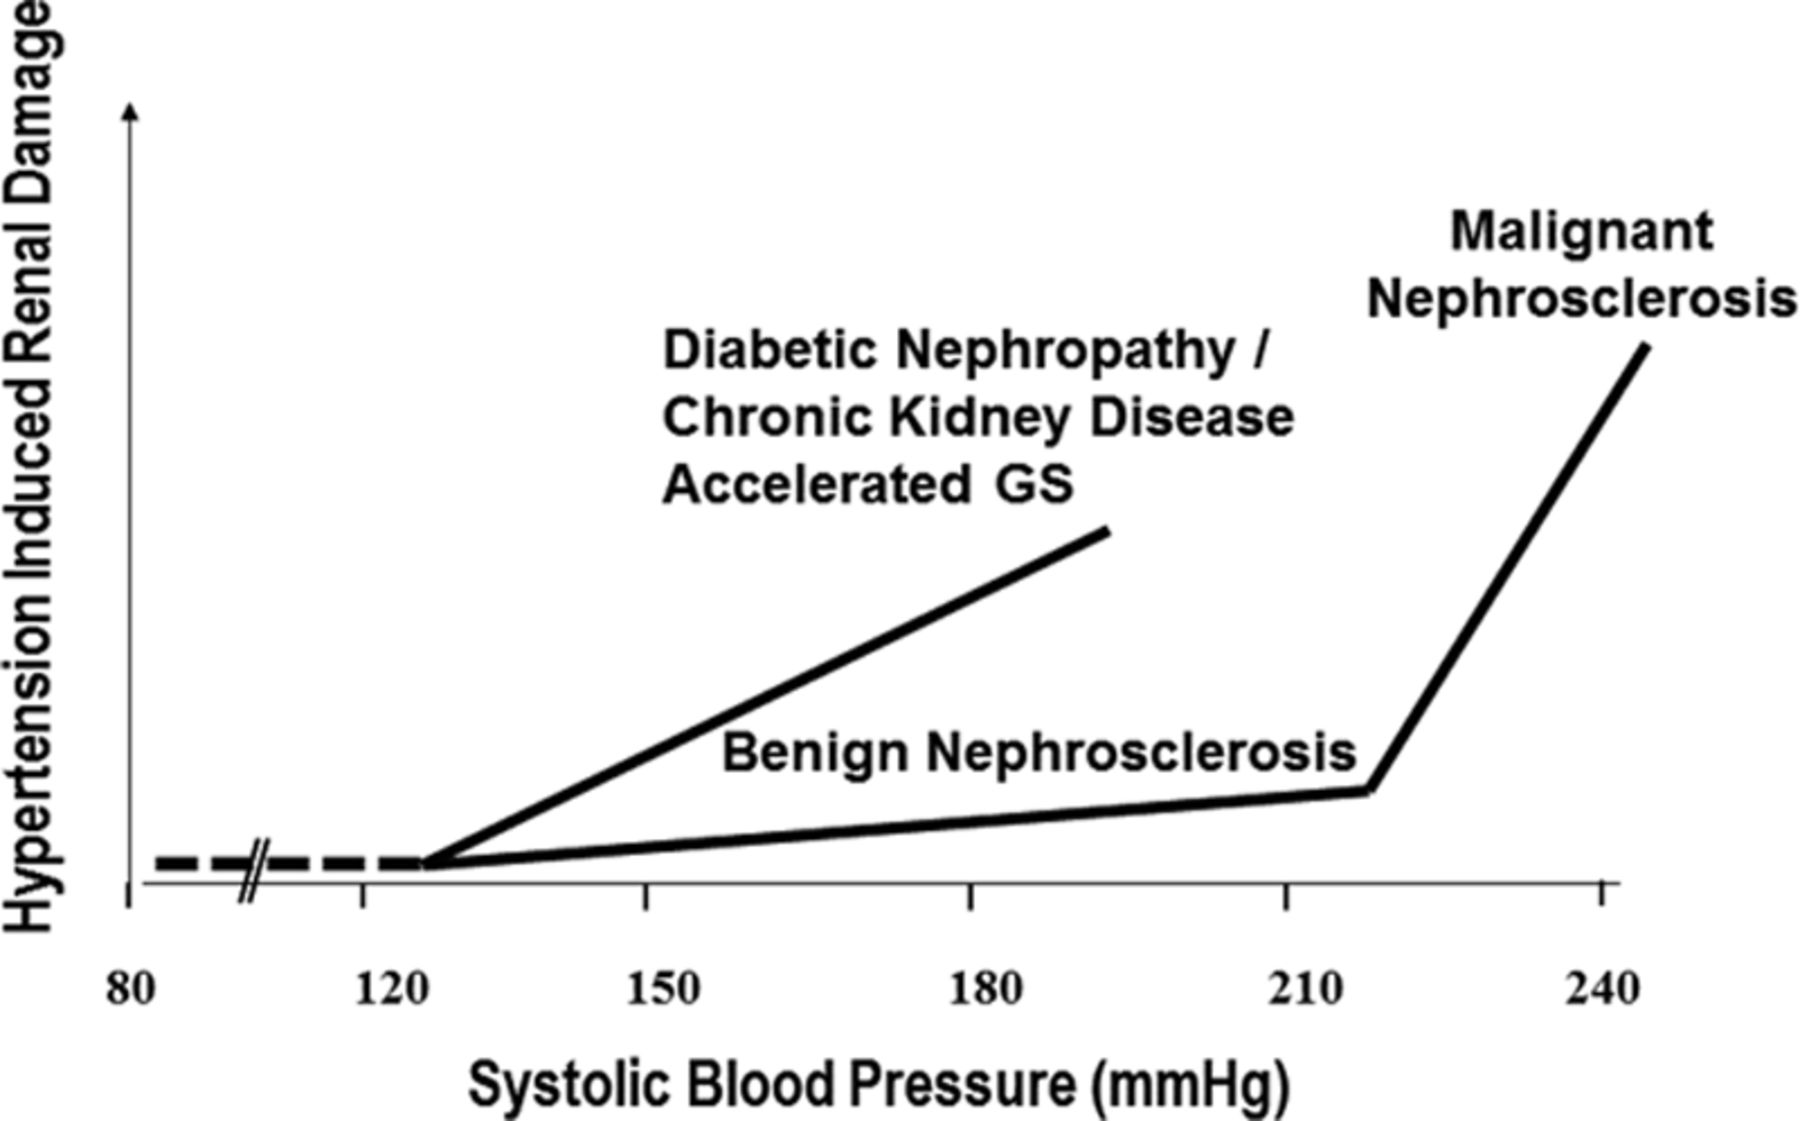 Hypertensive Kidney Injury and the Progression of Chronic